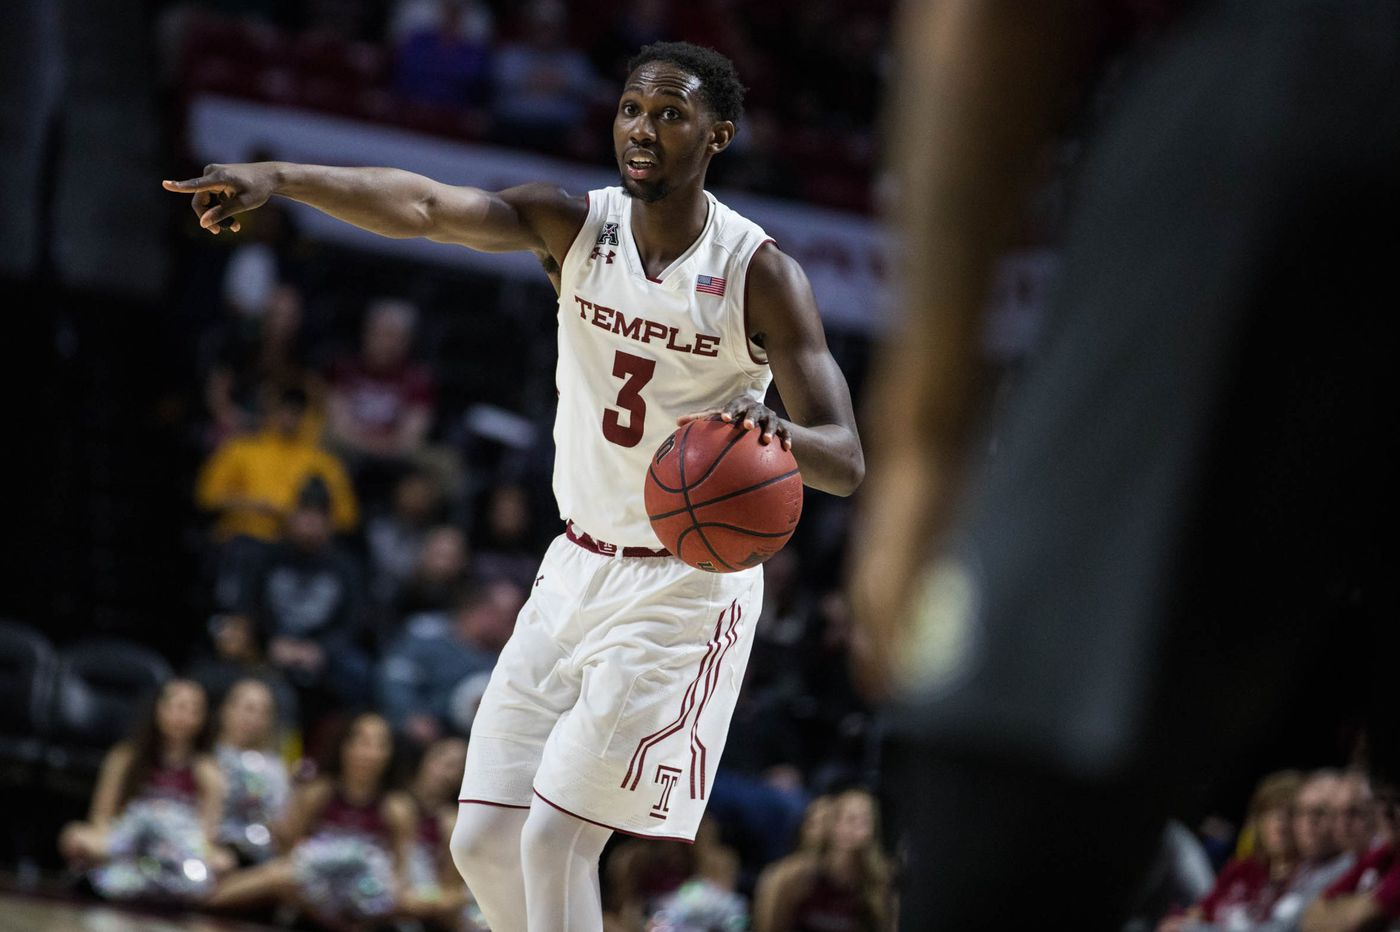 Temple to play Wichita State, Cincinnati just once in coming basketball season